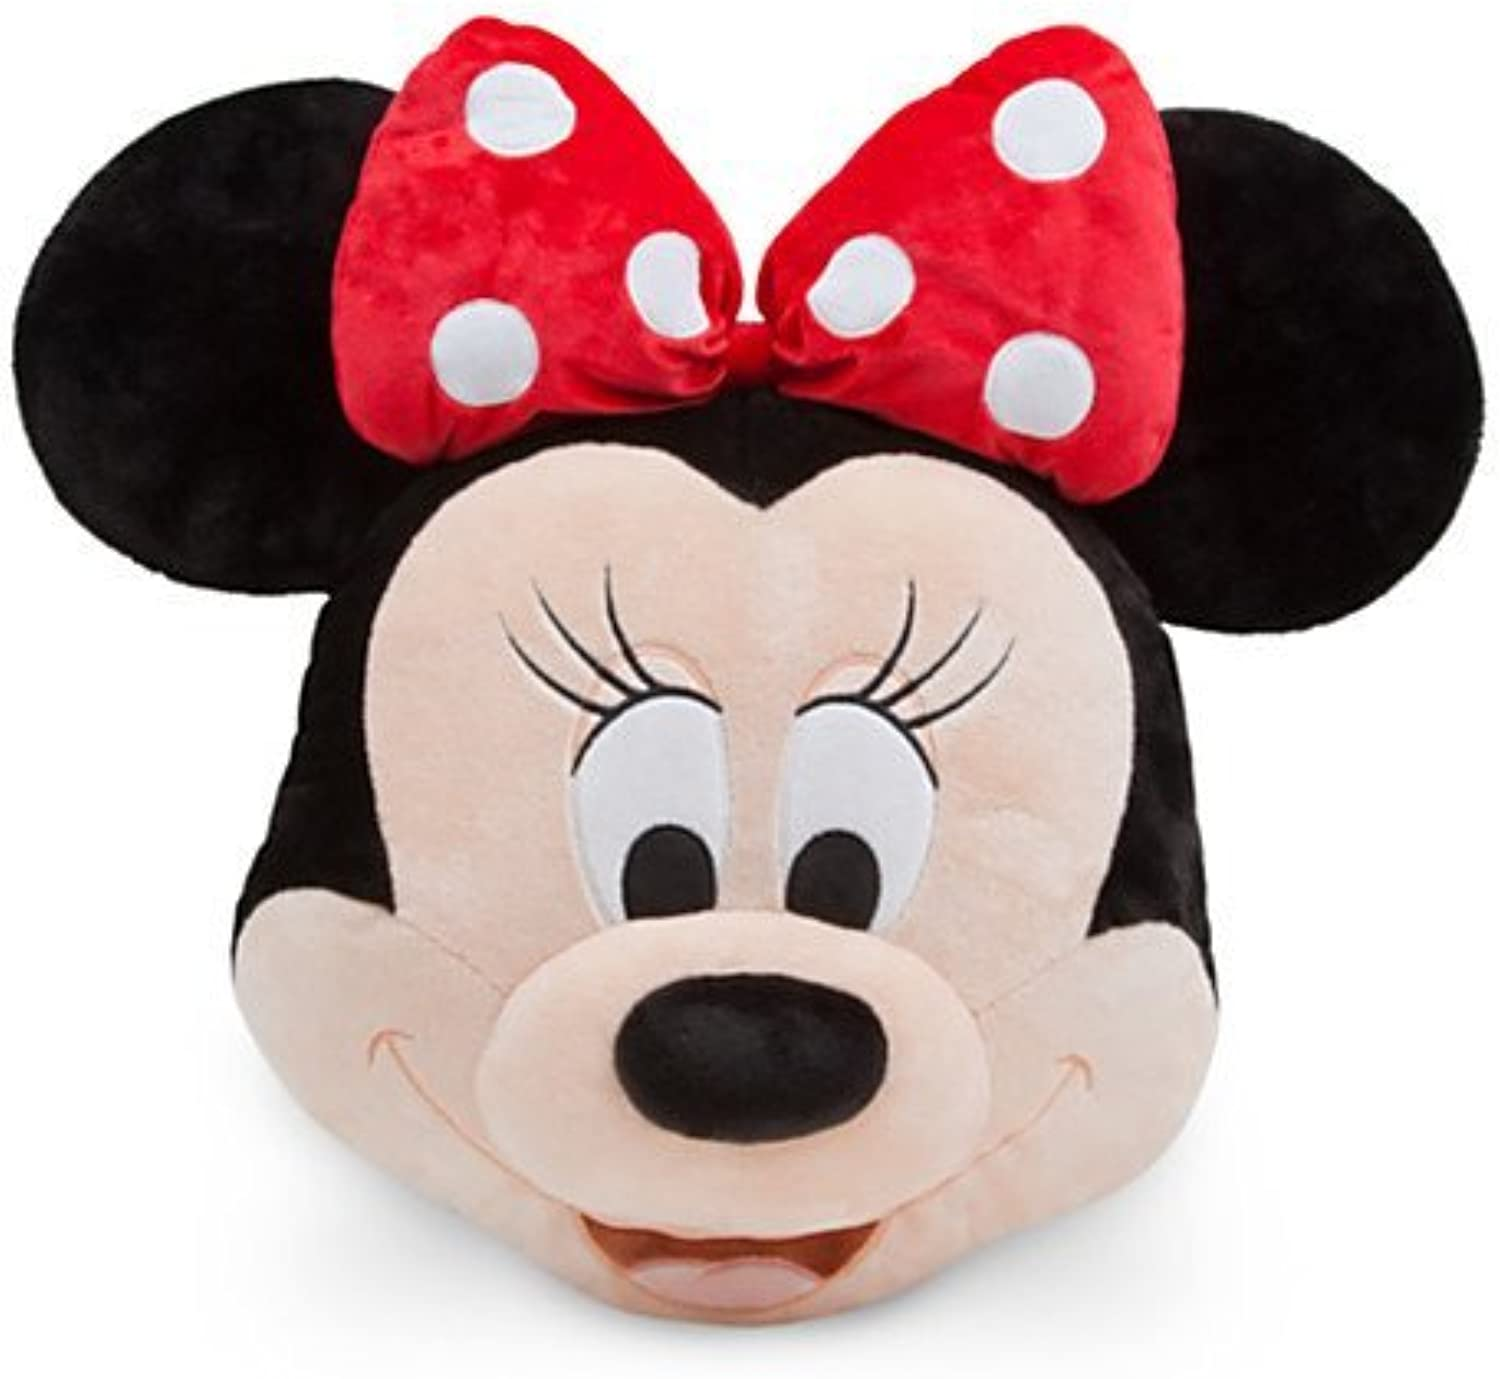 Minnie Mouse Plush Pillow - rot - 16'' by Disney